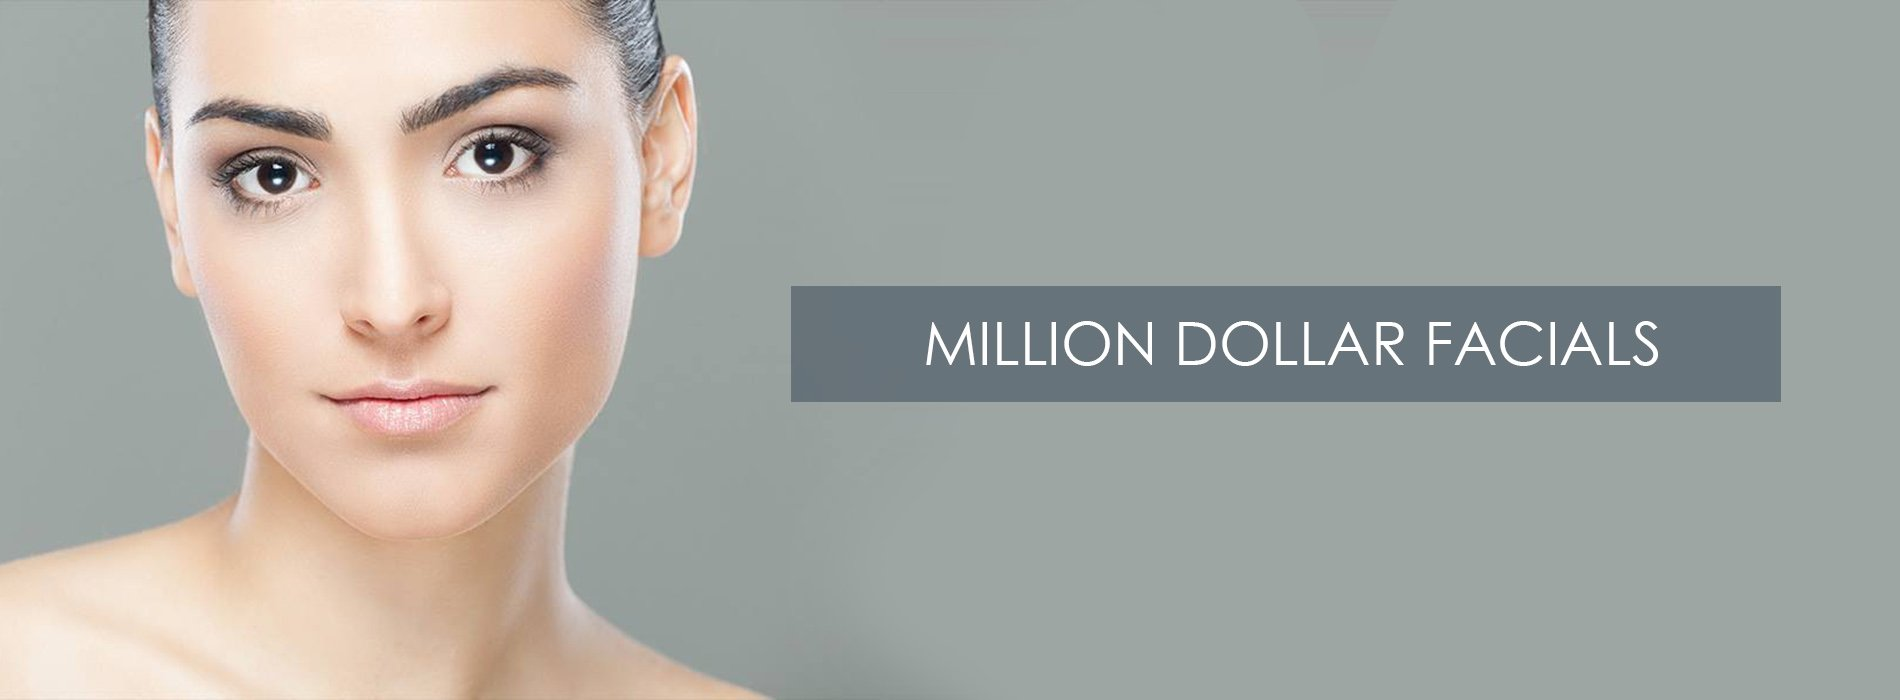 Million Dollar Facials at Dunstable Aesthetics Clinic